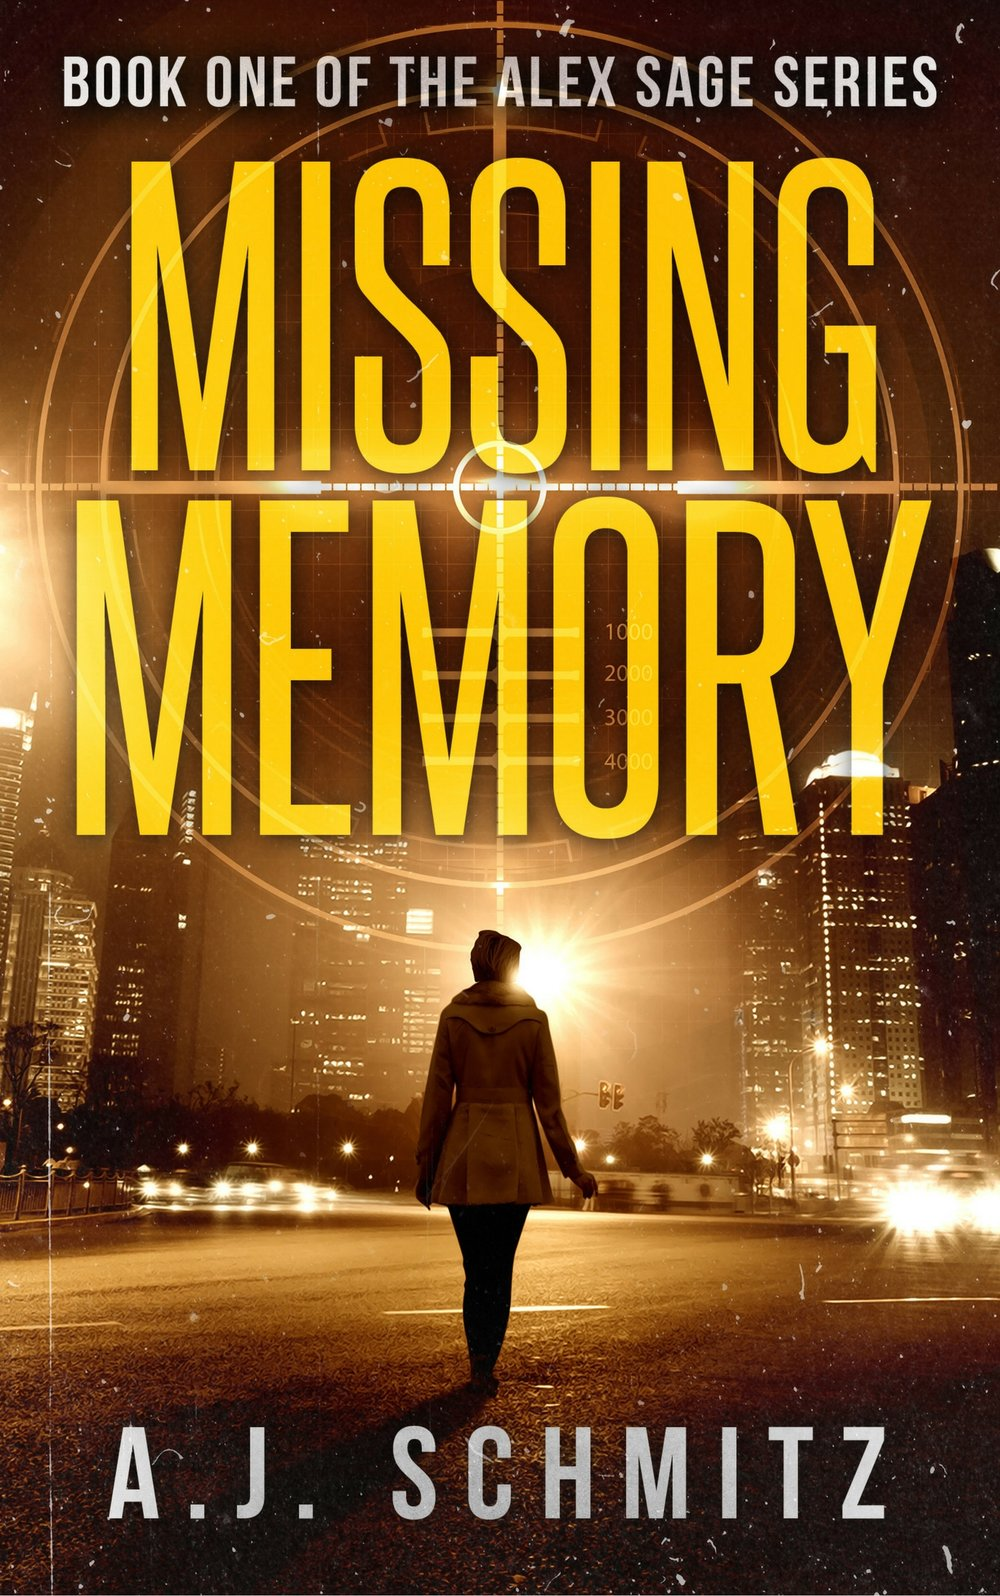 Missing Memory (Alex Sage Book 1) - Kindle.jpg